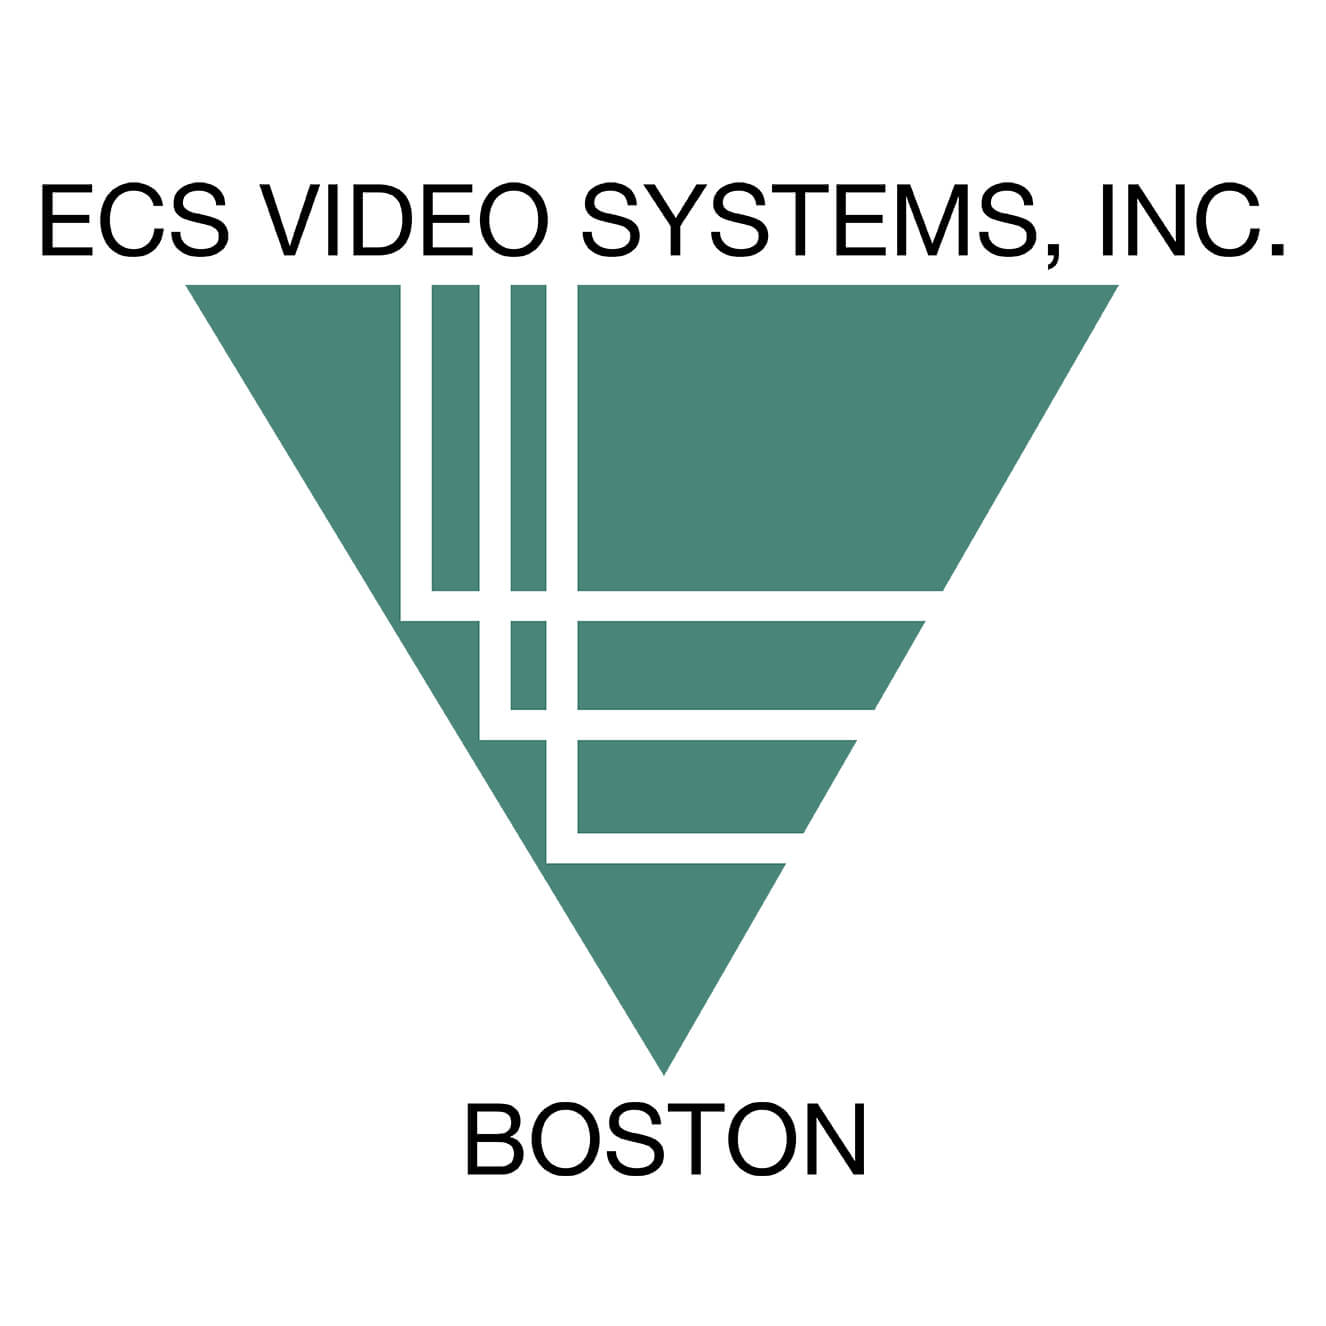 ECS Video Systems, Inc.